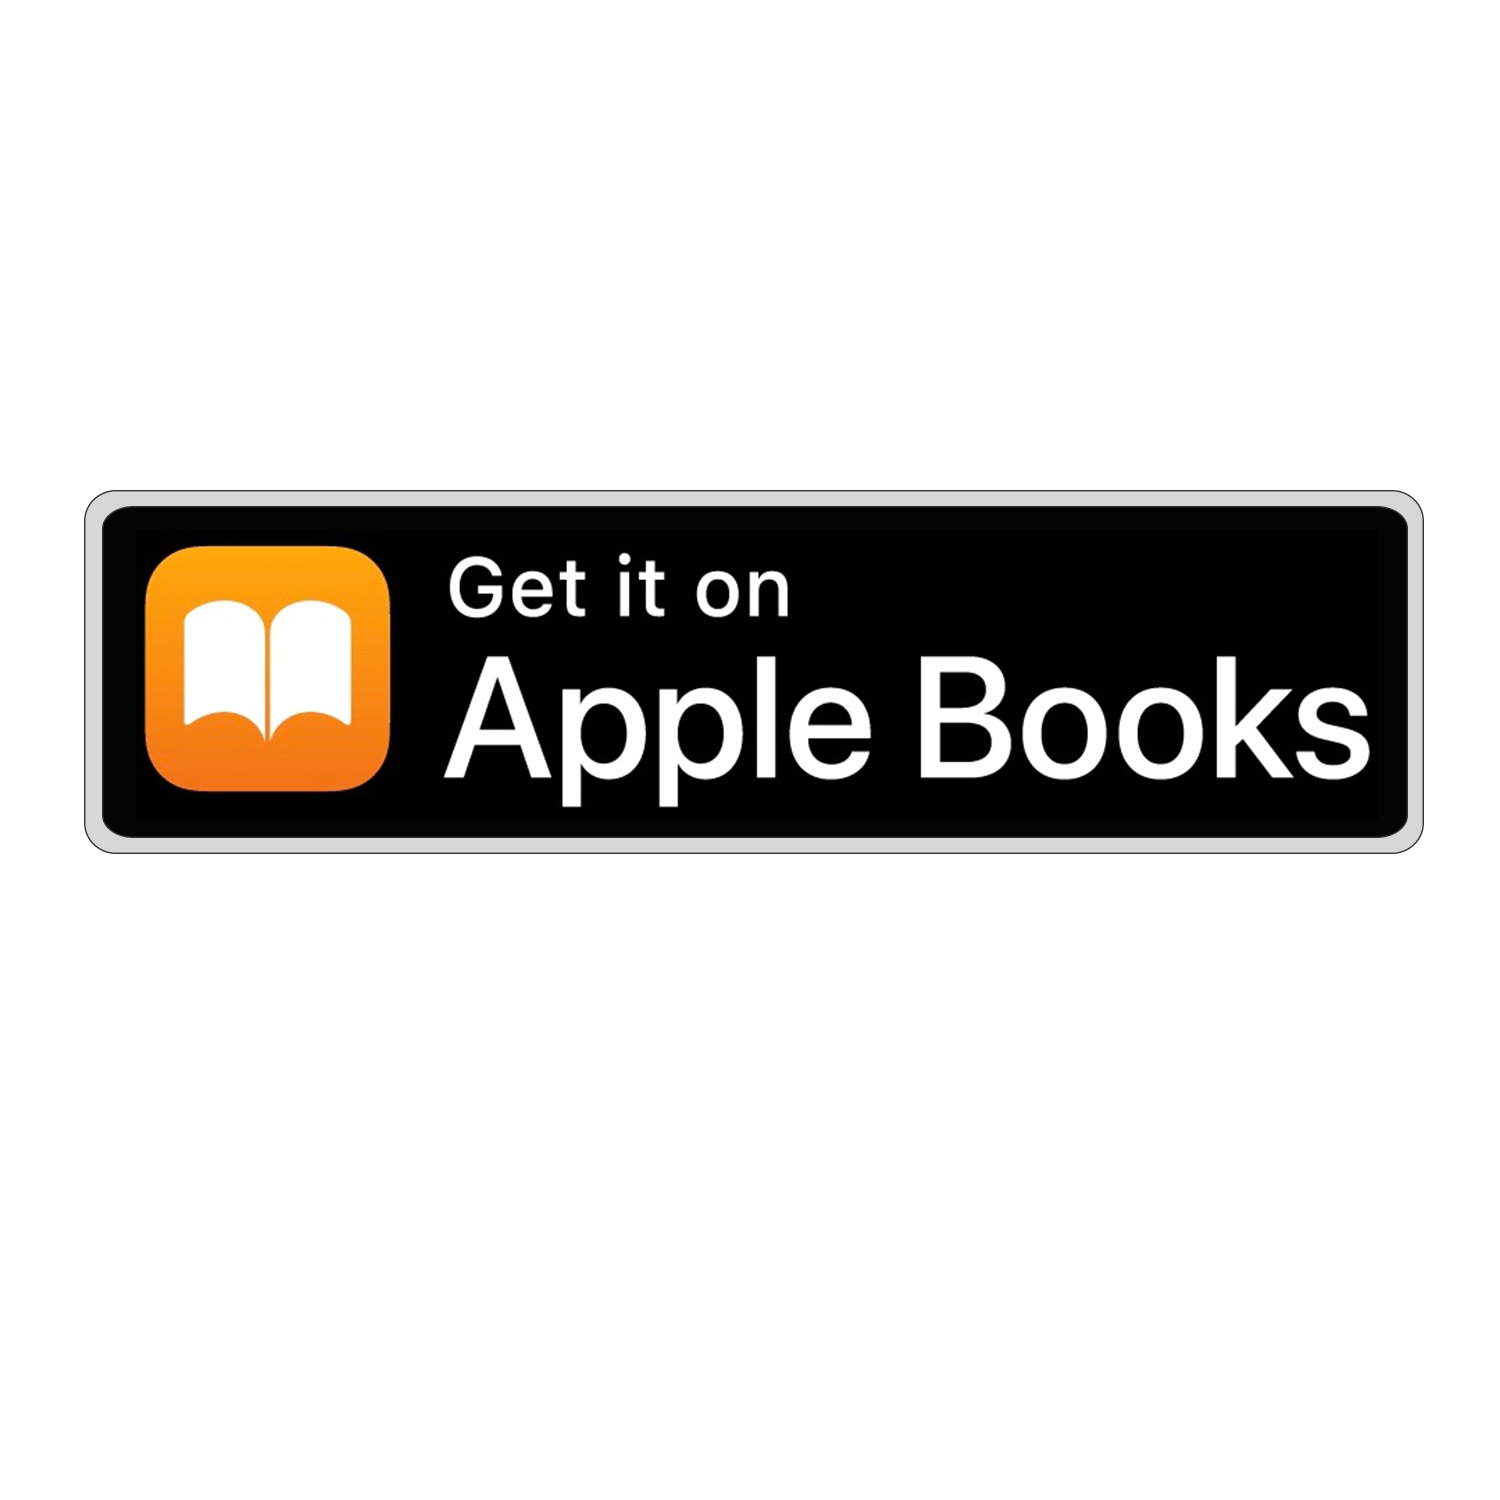 Get it on Apple Books.png